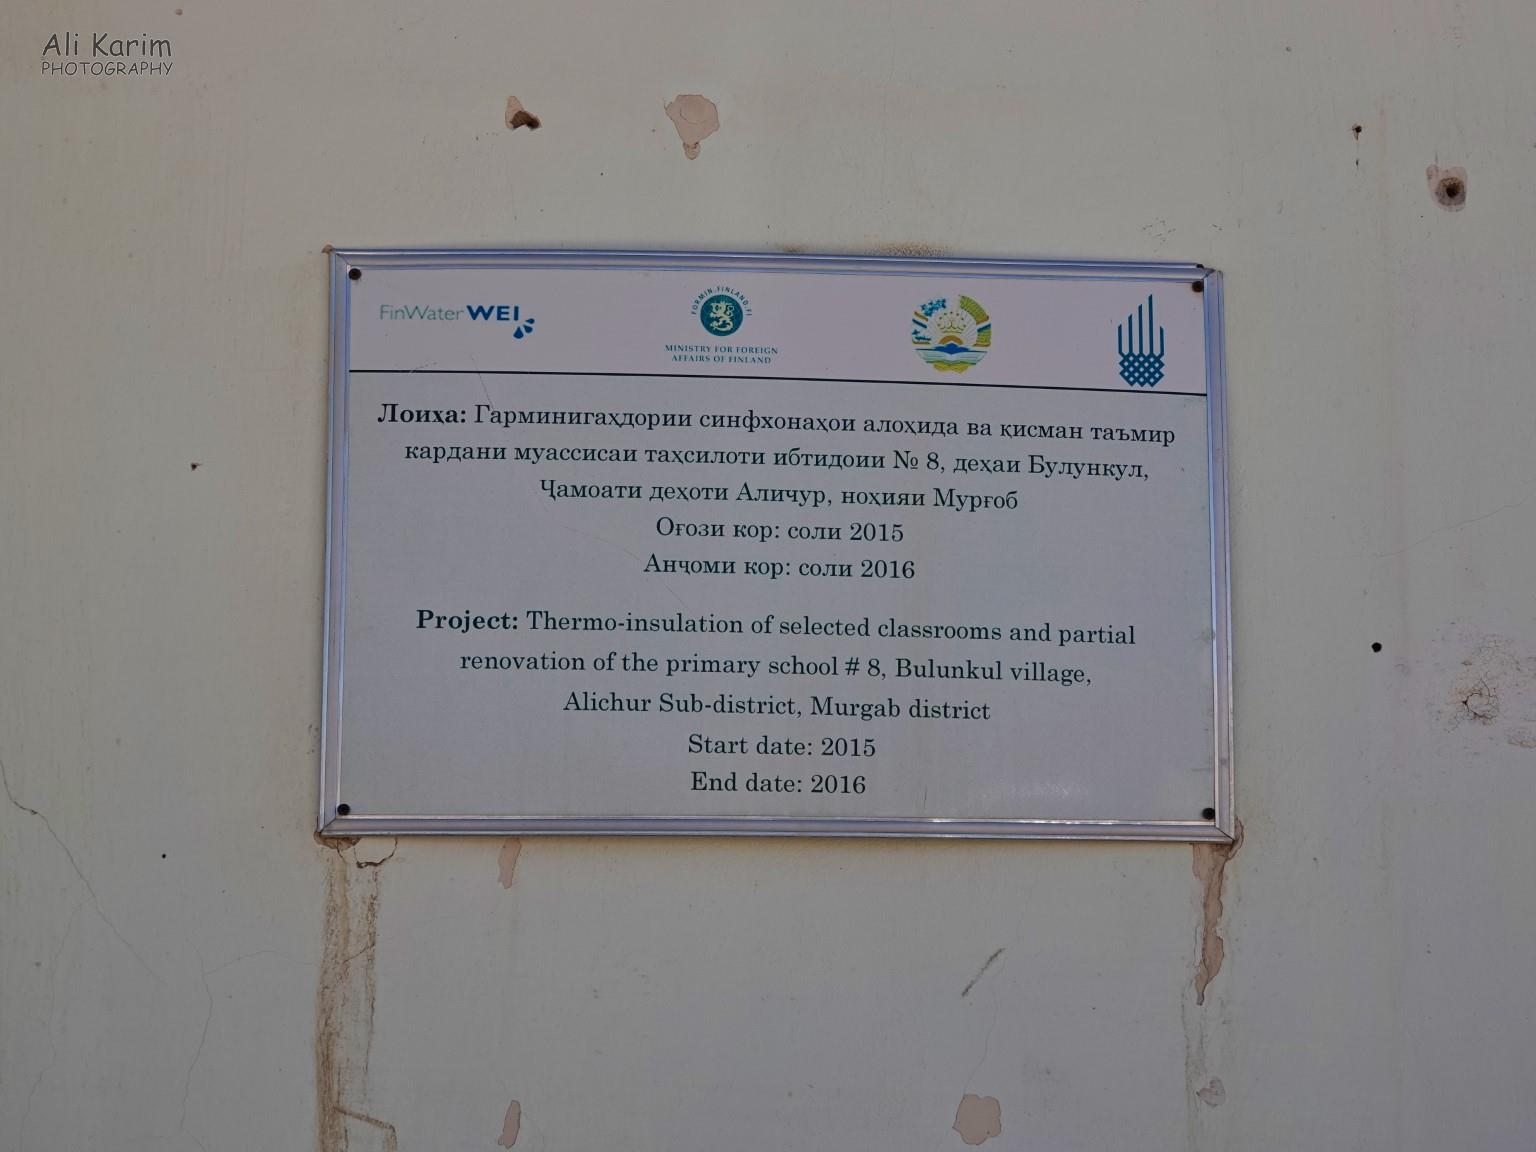 Langar, Tajikistan, Signage at school entrance